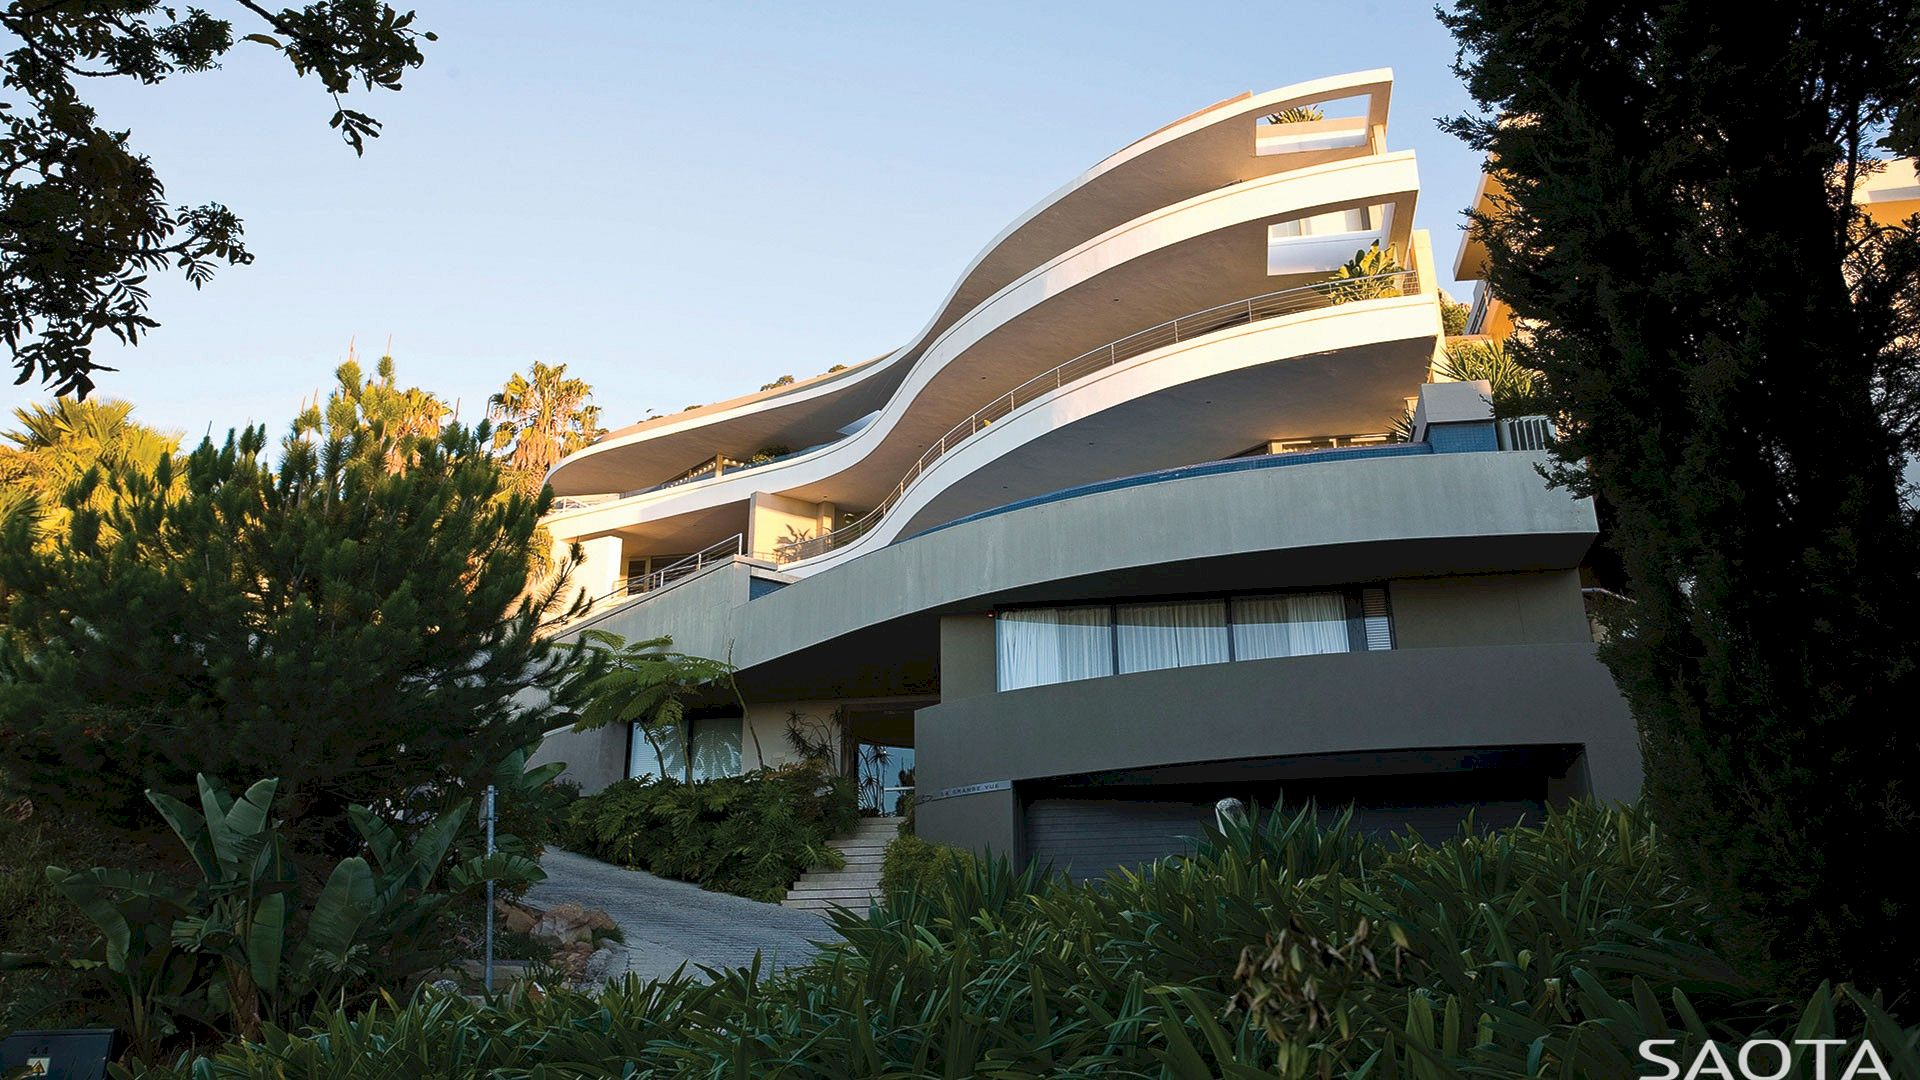 LGV 5 By SAOTA Architecture And Design 5